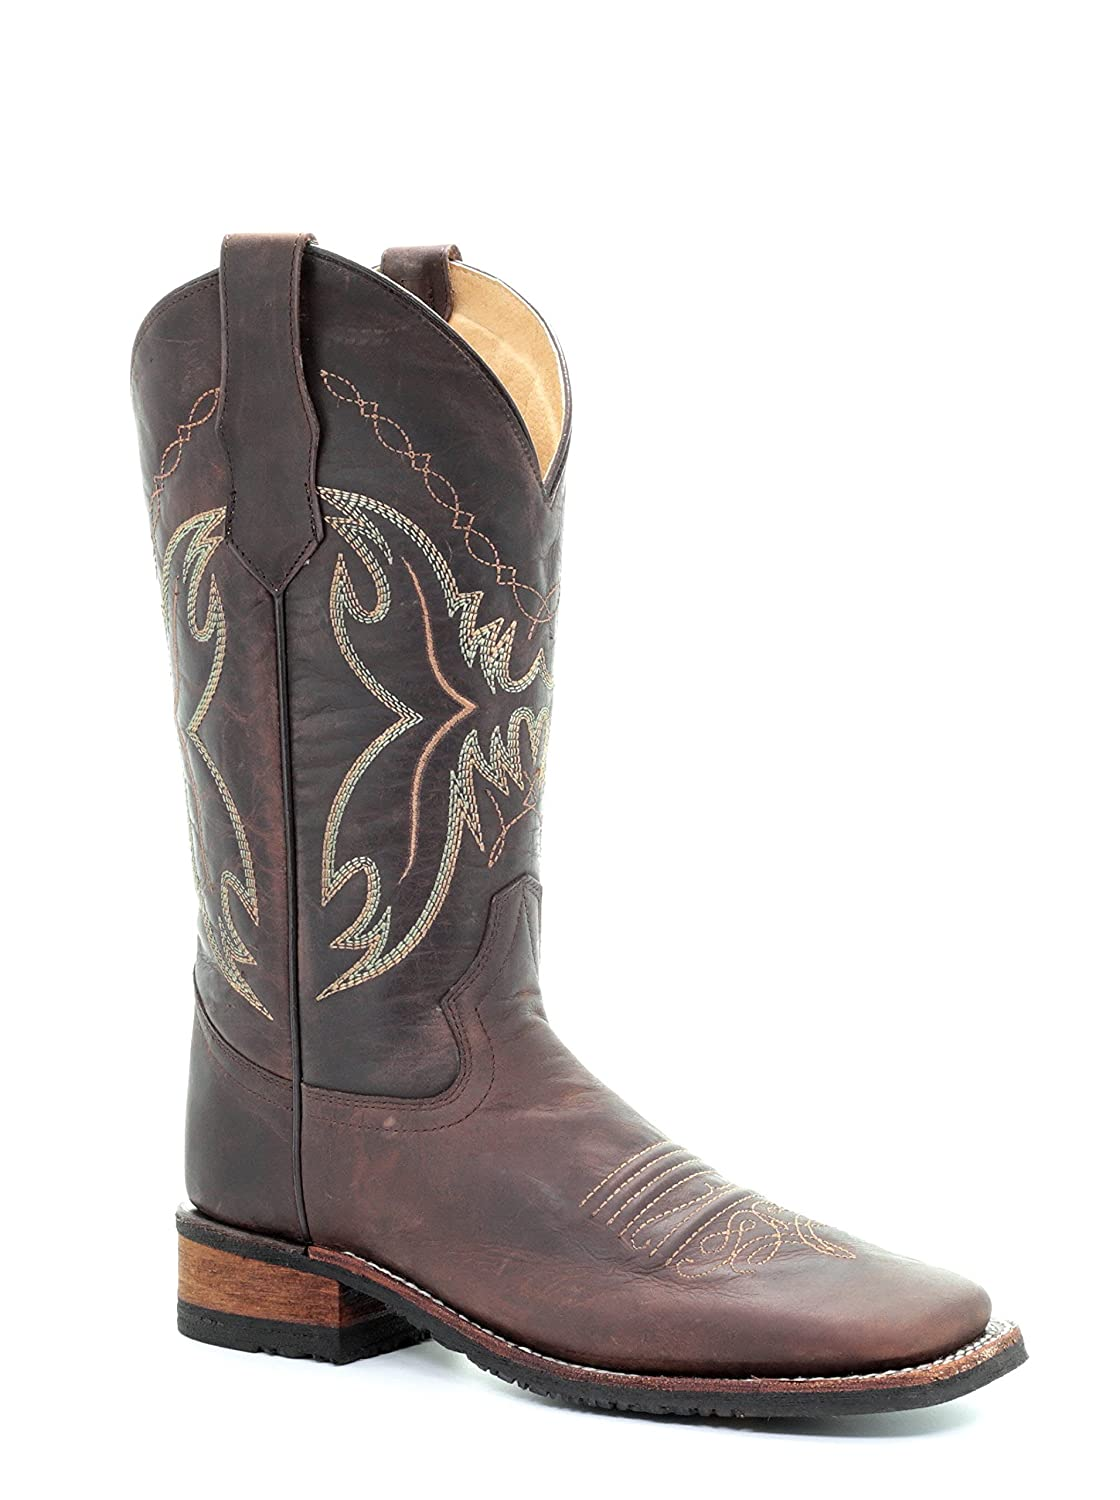 5256d10ad31 Amazon.com | Corral Circle G Women's Western Embroidery Square Toe ...